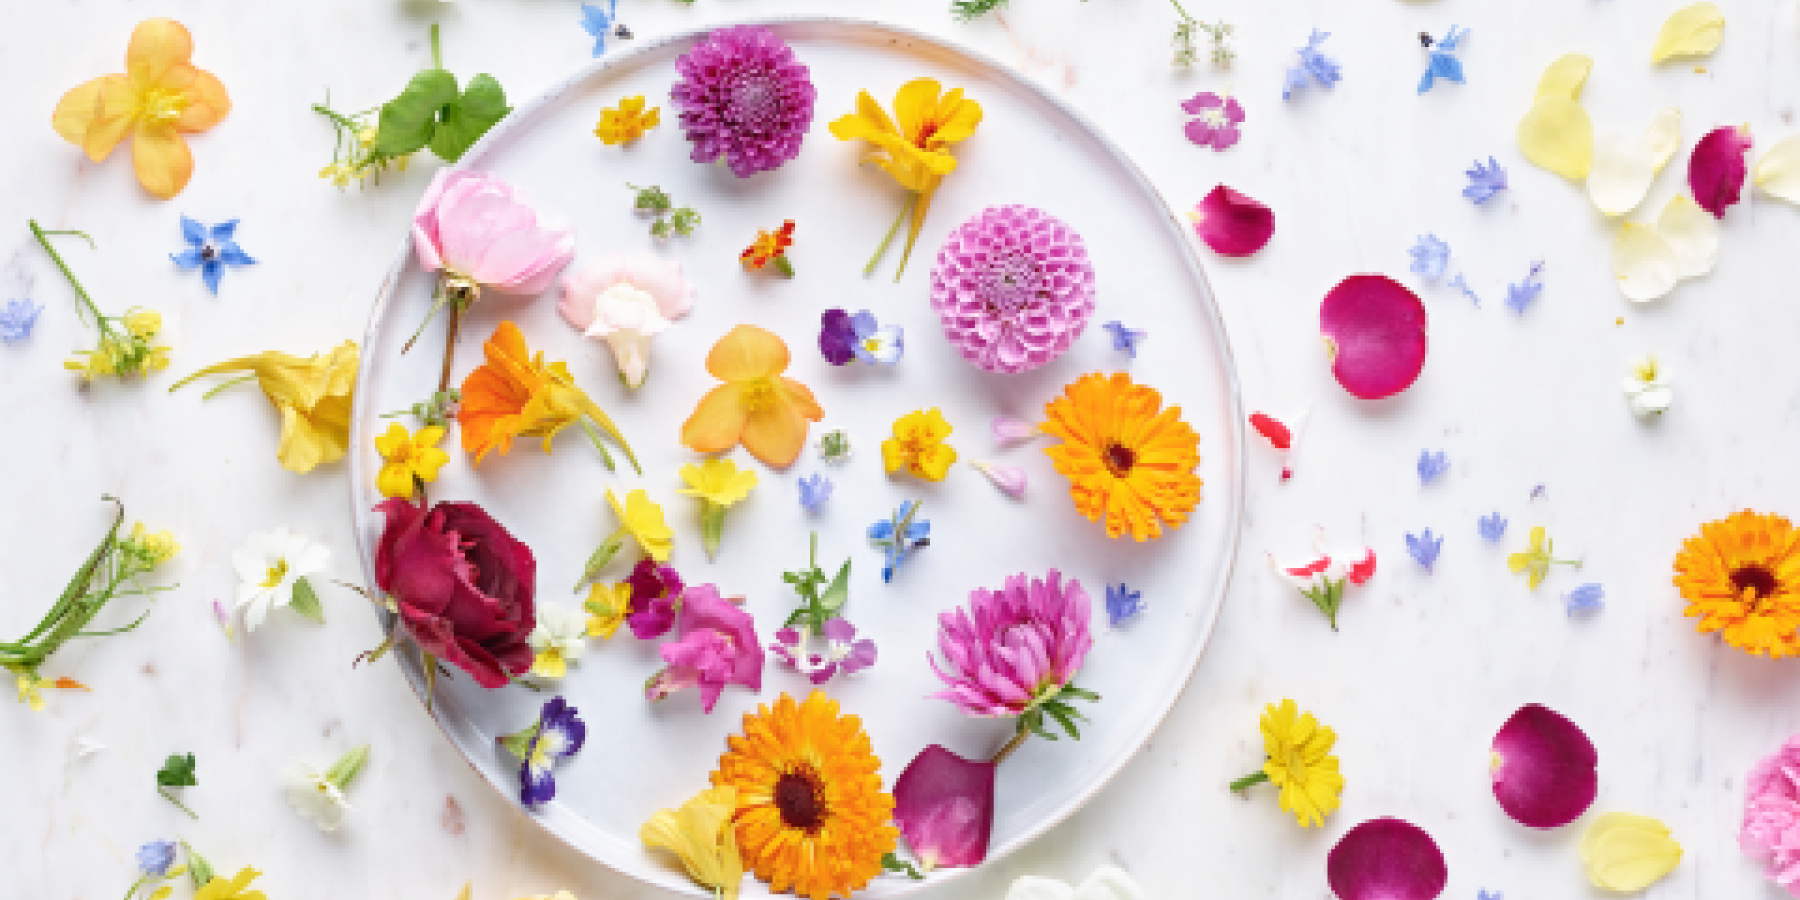 Award winning edible flowers photographed by Neil White Photographer